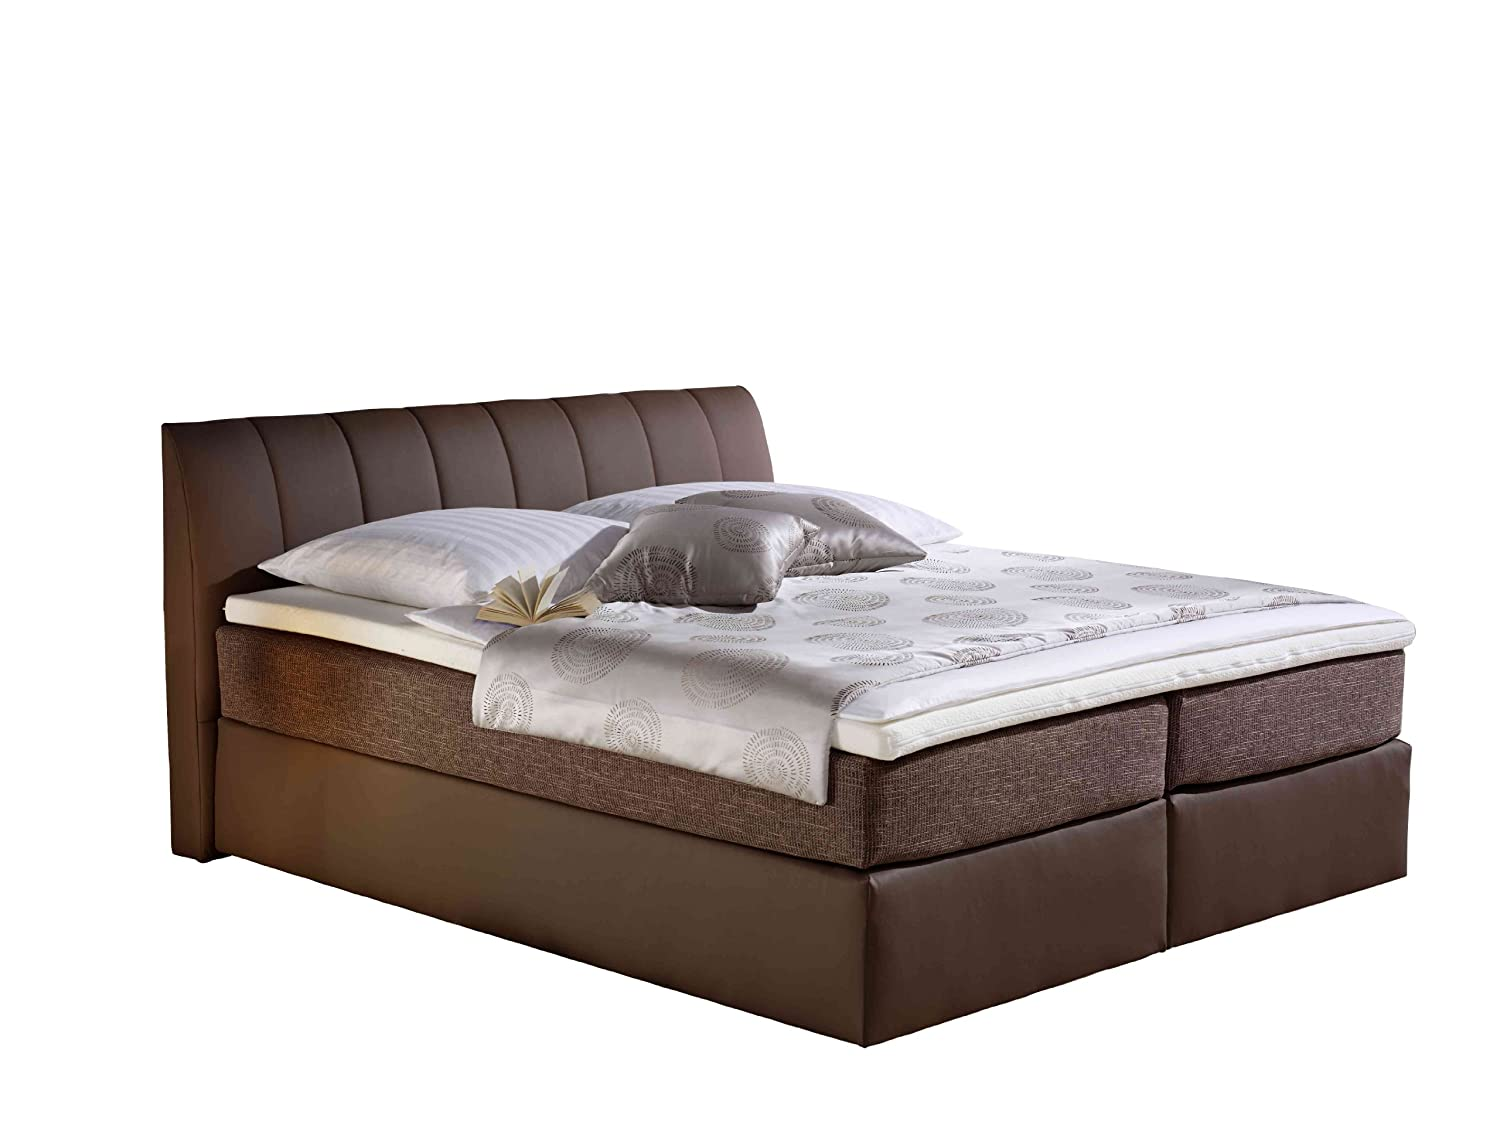 Maintal Betten 236146 4827 4716 Boxspringbett Vanilla 140 X 200 Cm